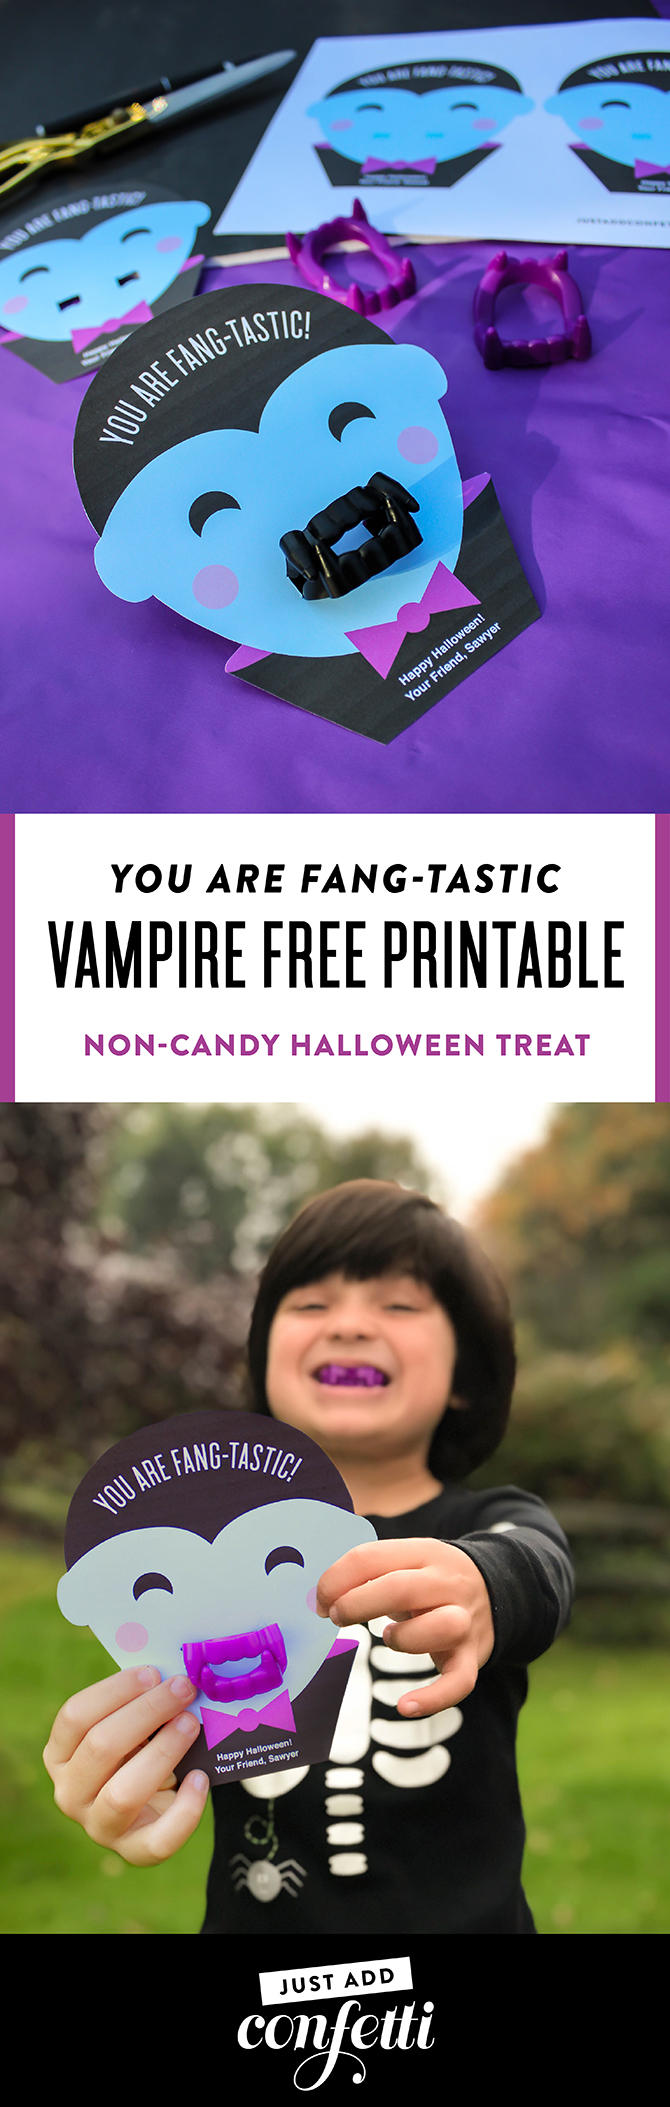 vampire free printable, you are fangtastic, kids halloween favor, halloween classroom treat, non-candy halloween treat, halloween treat, kids non-candy halloween treat, free printable, just add confetti, vampire, vampire fangs, plastic fangs, kids halloween, halloween fun, printable